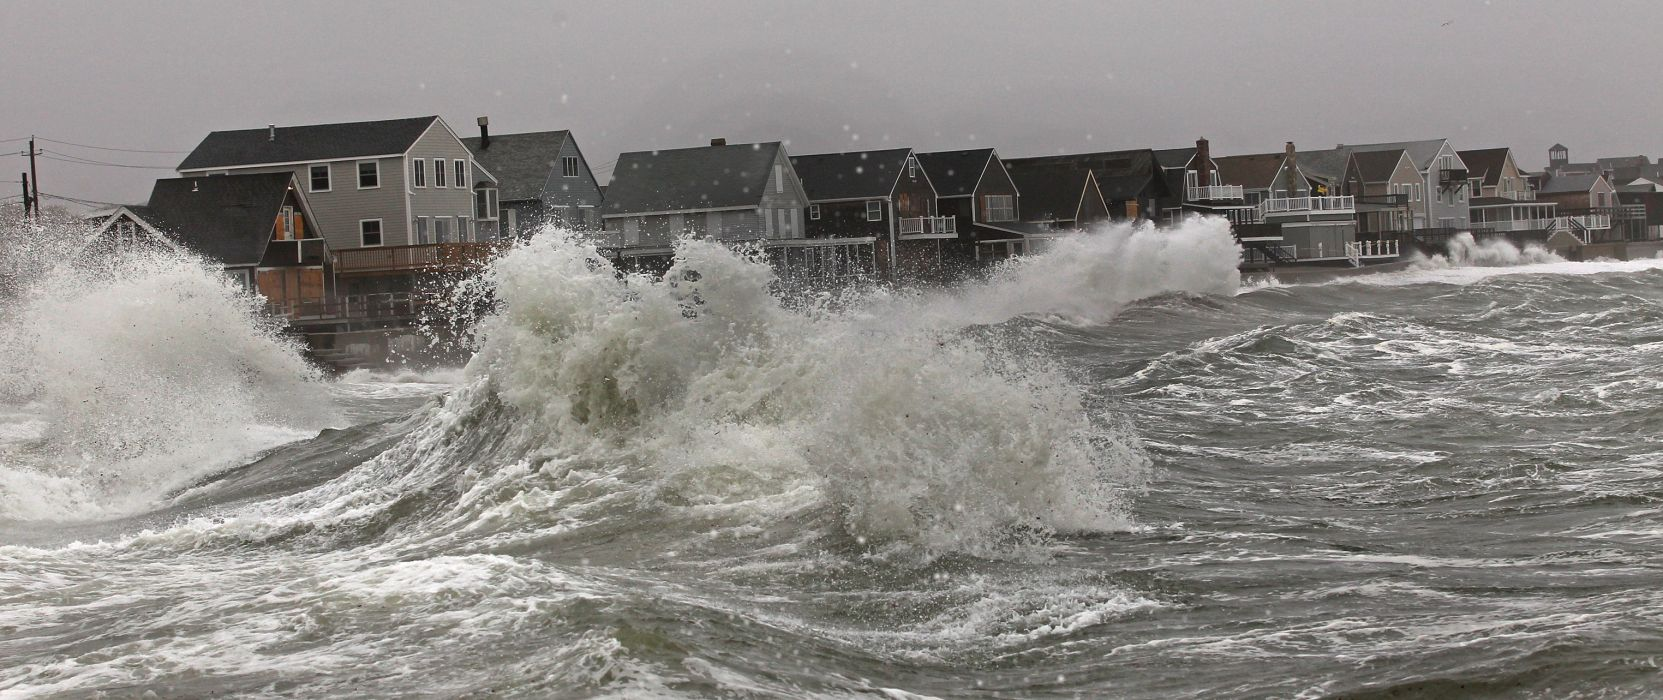 HURRICANE SANDY storm disaster weather clouds ocean waves house building    g wallpaper